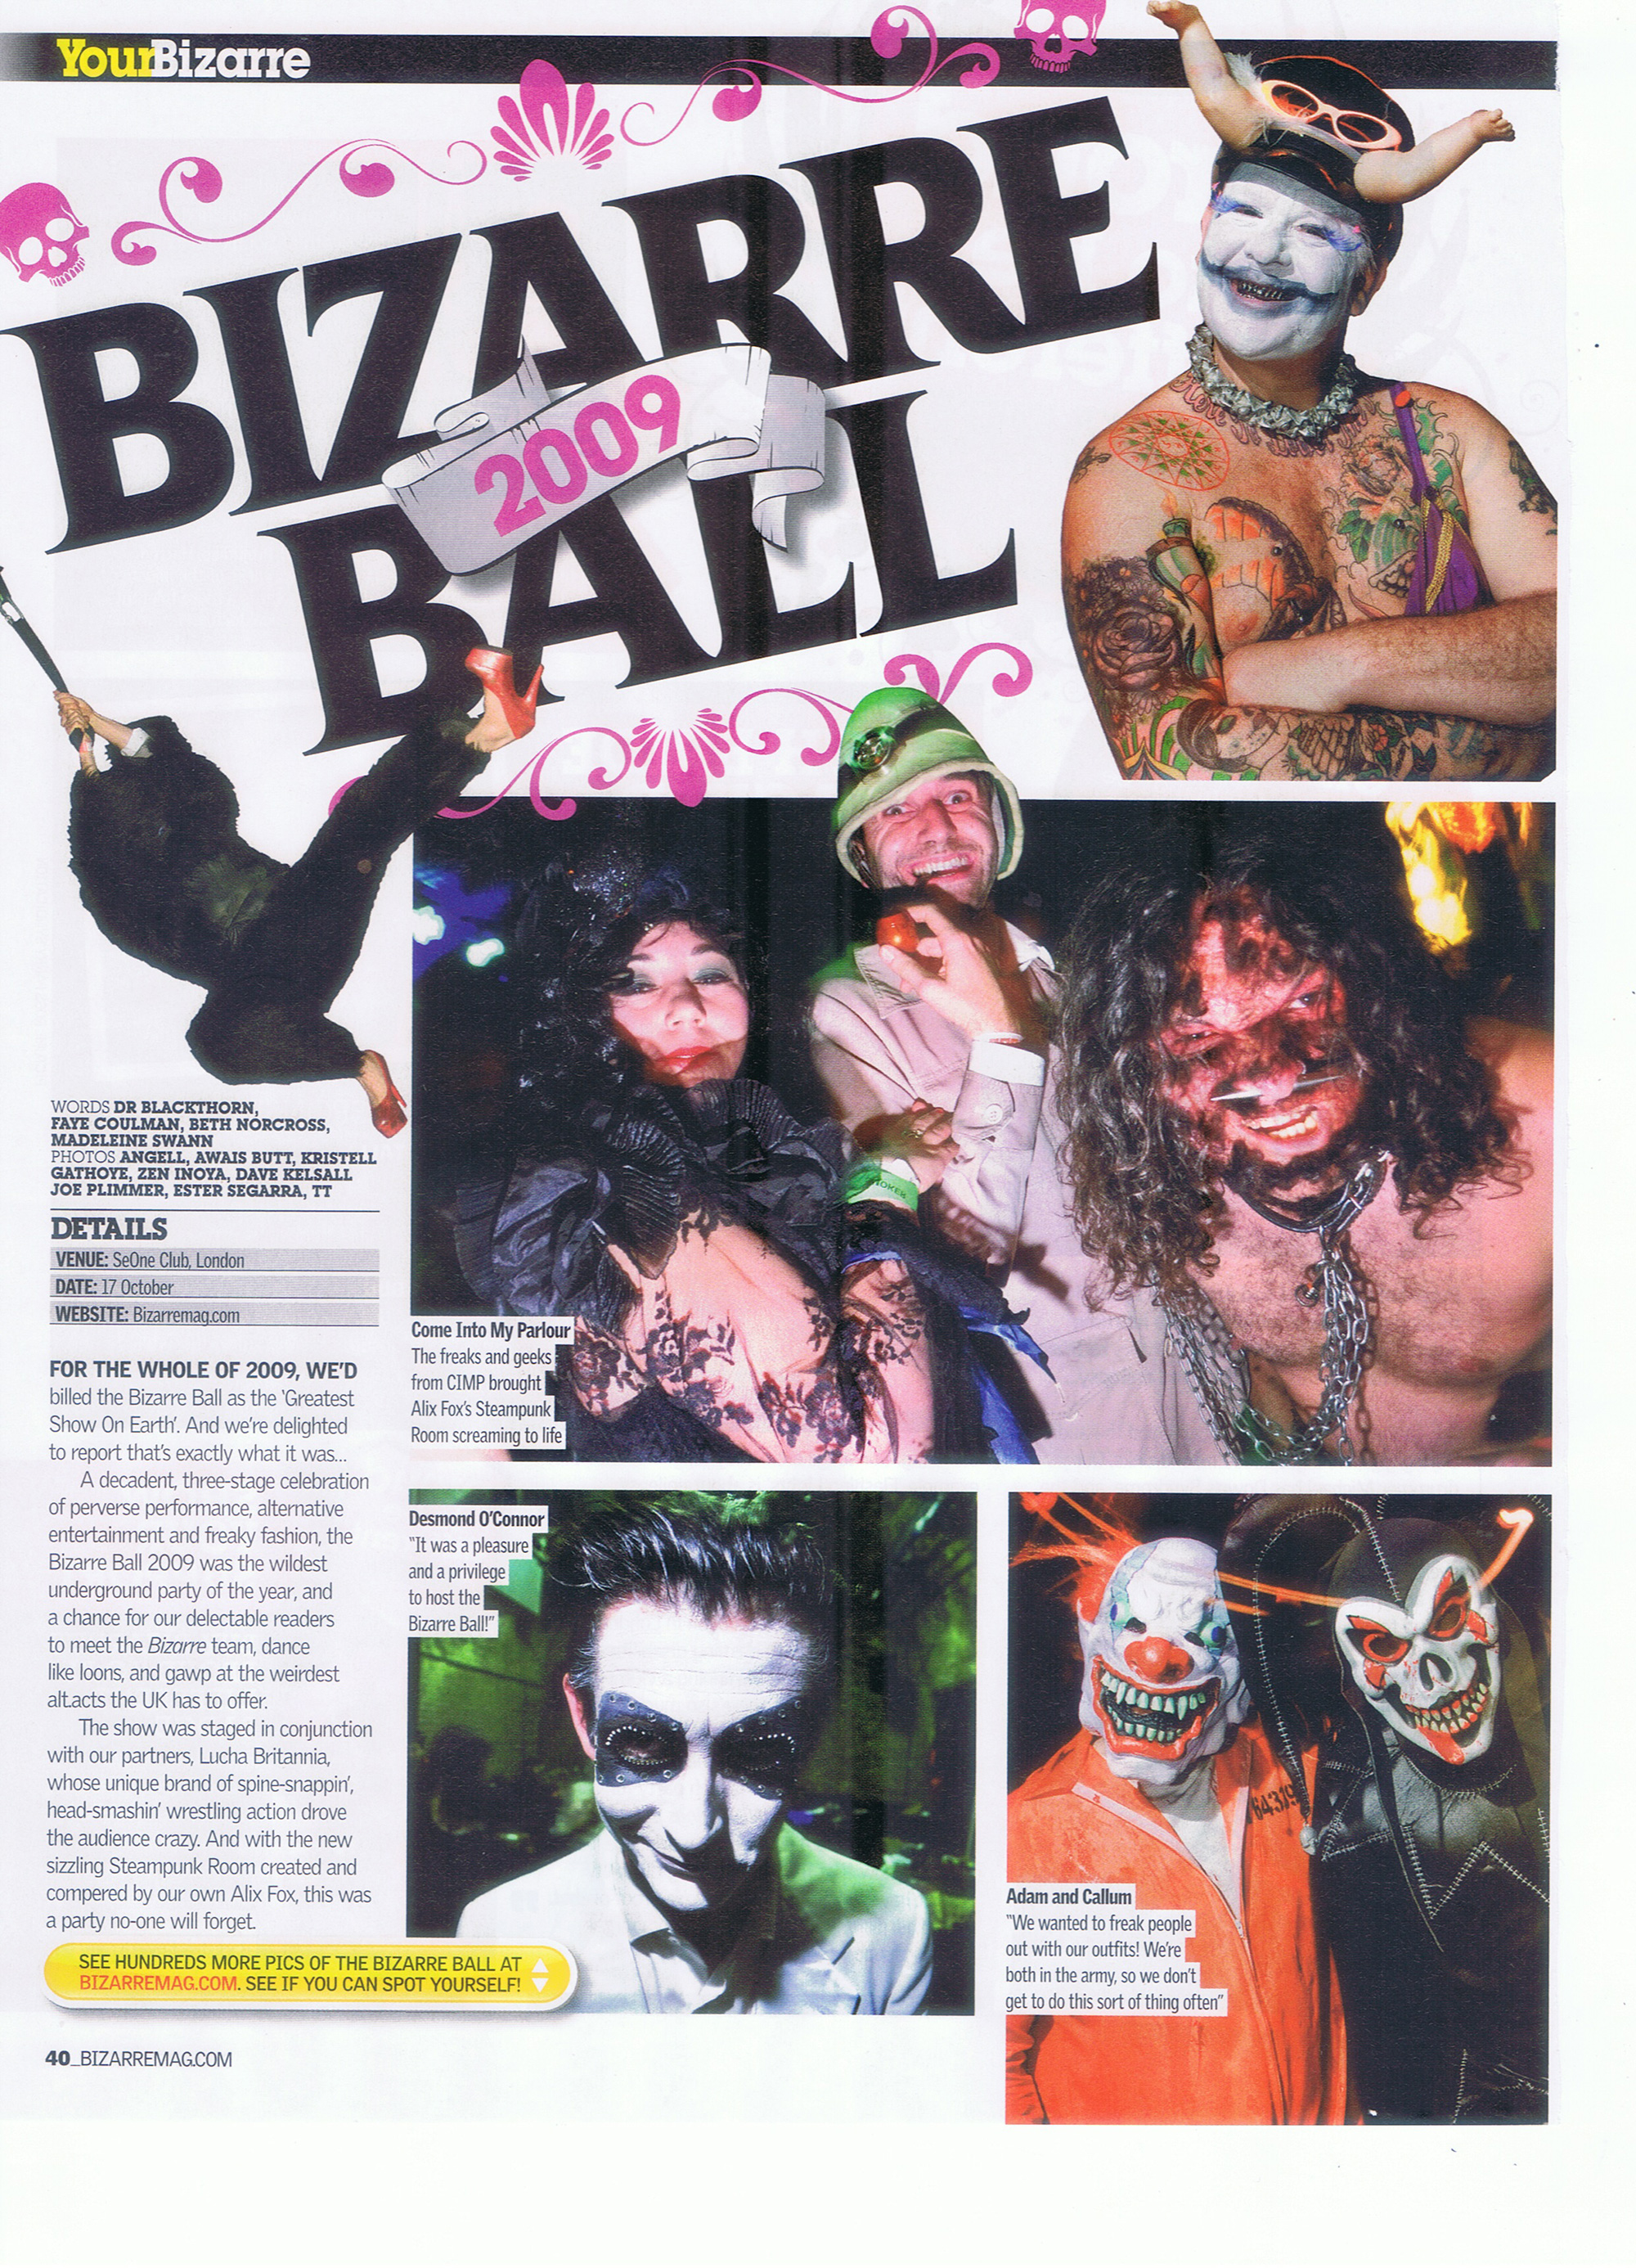 Bizzarre ball 1